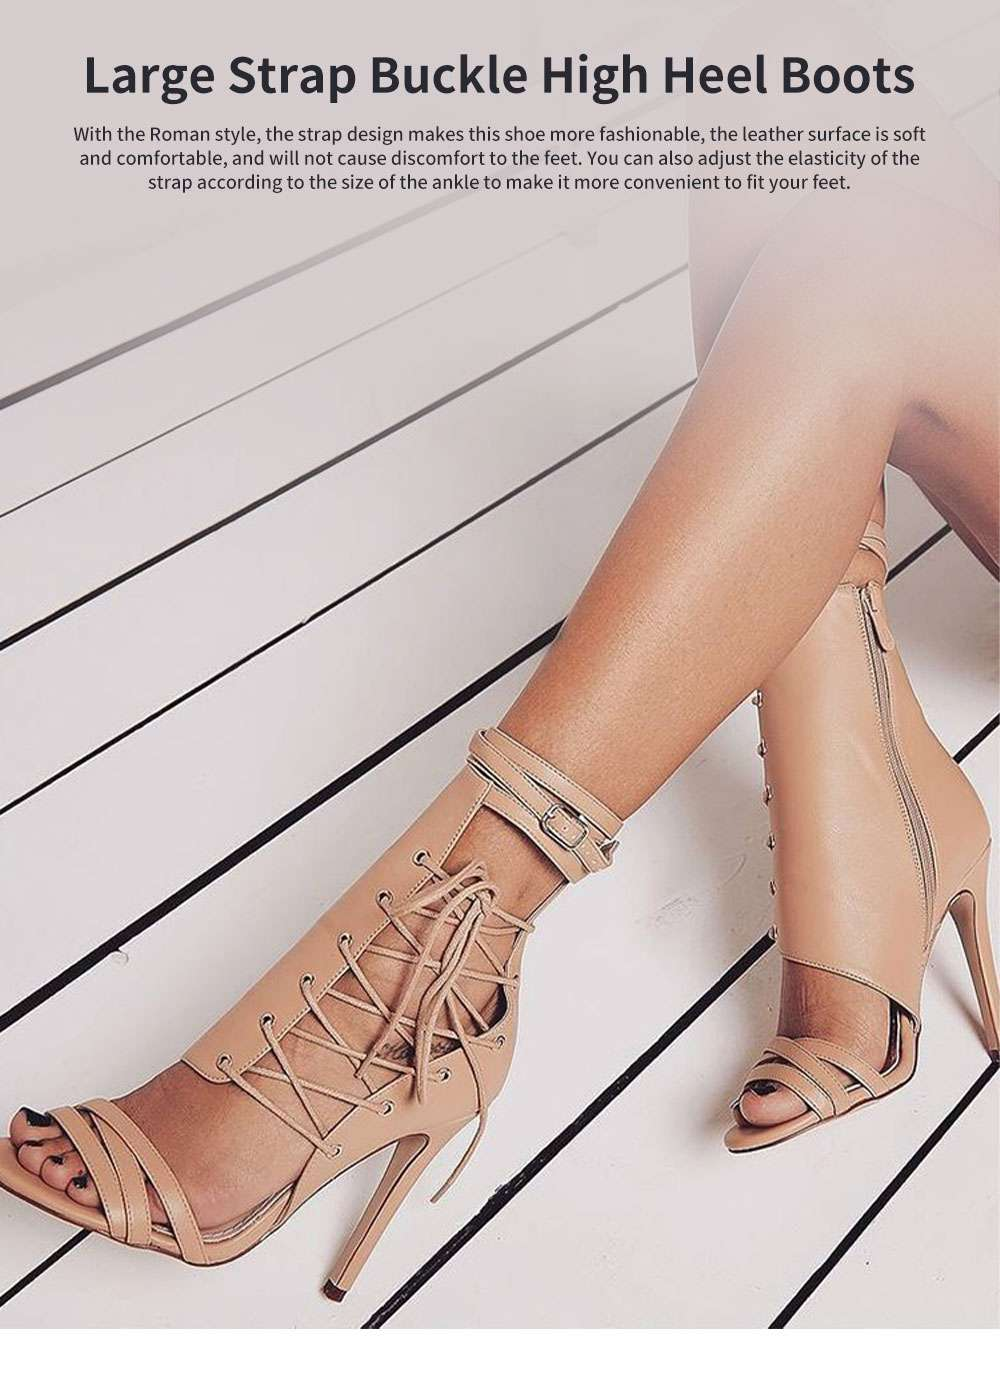 Large Strap Buckle High Heel Boots, Roman Style Fashionable Sexy Boots for Women 0